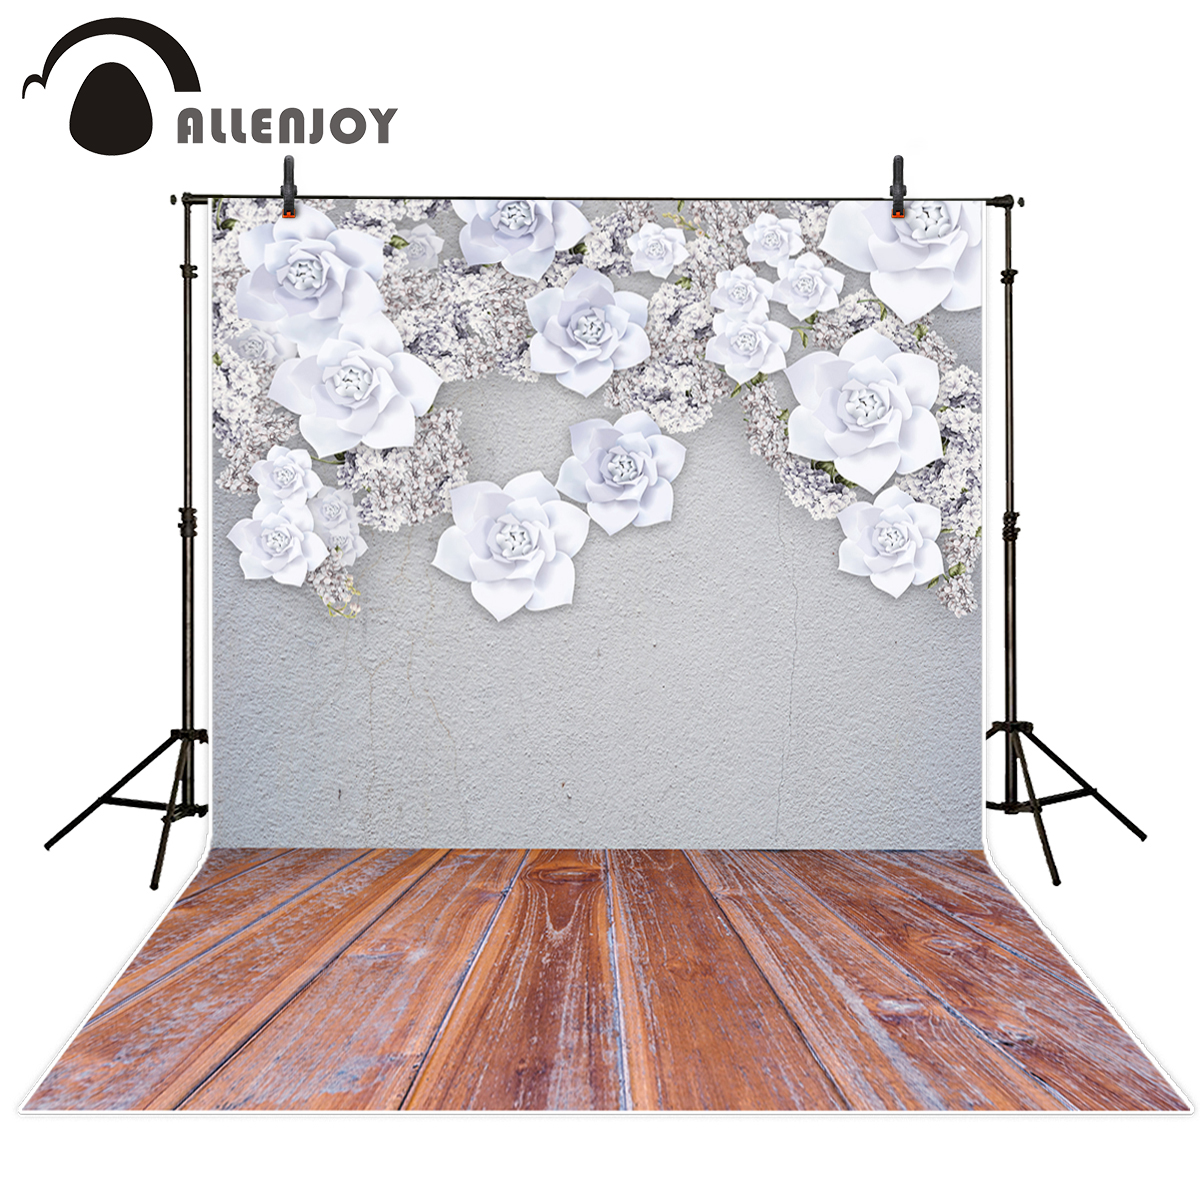 Allenjoy photography background white flower grey wall wood floor wedding theme backdrop professional photo background studio 10ft 20ft romantic wedding backdrop f 894 fabric background idea wood floor digital photography backdrop for picture taking